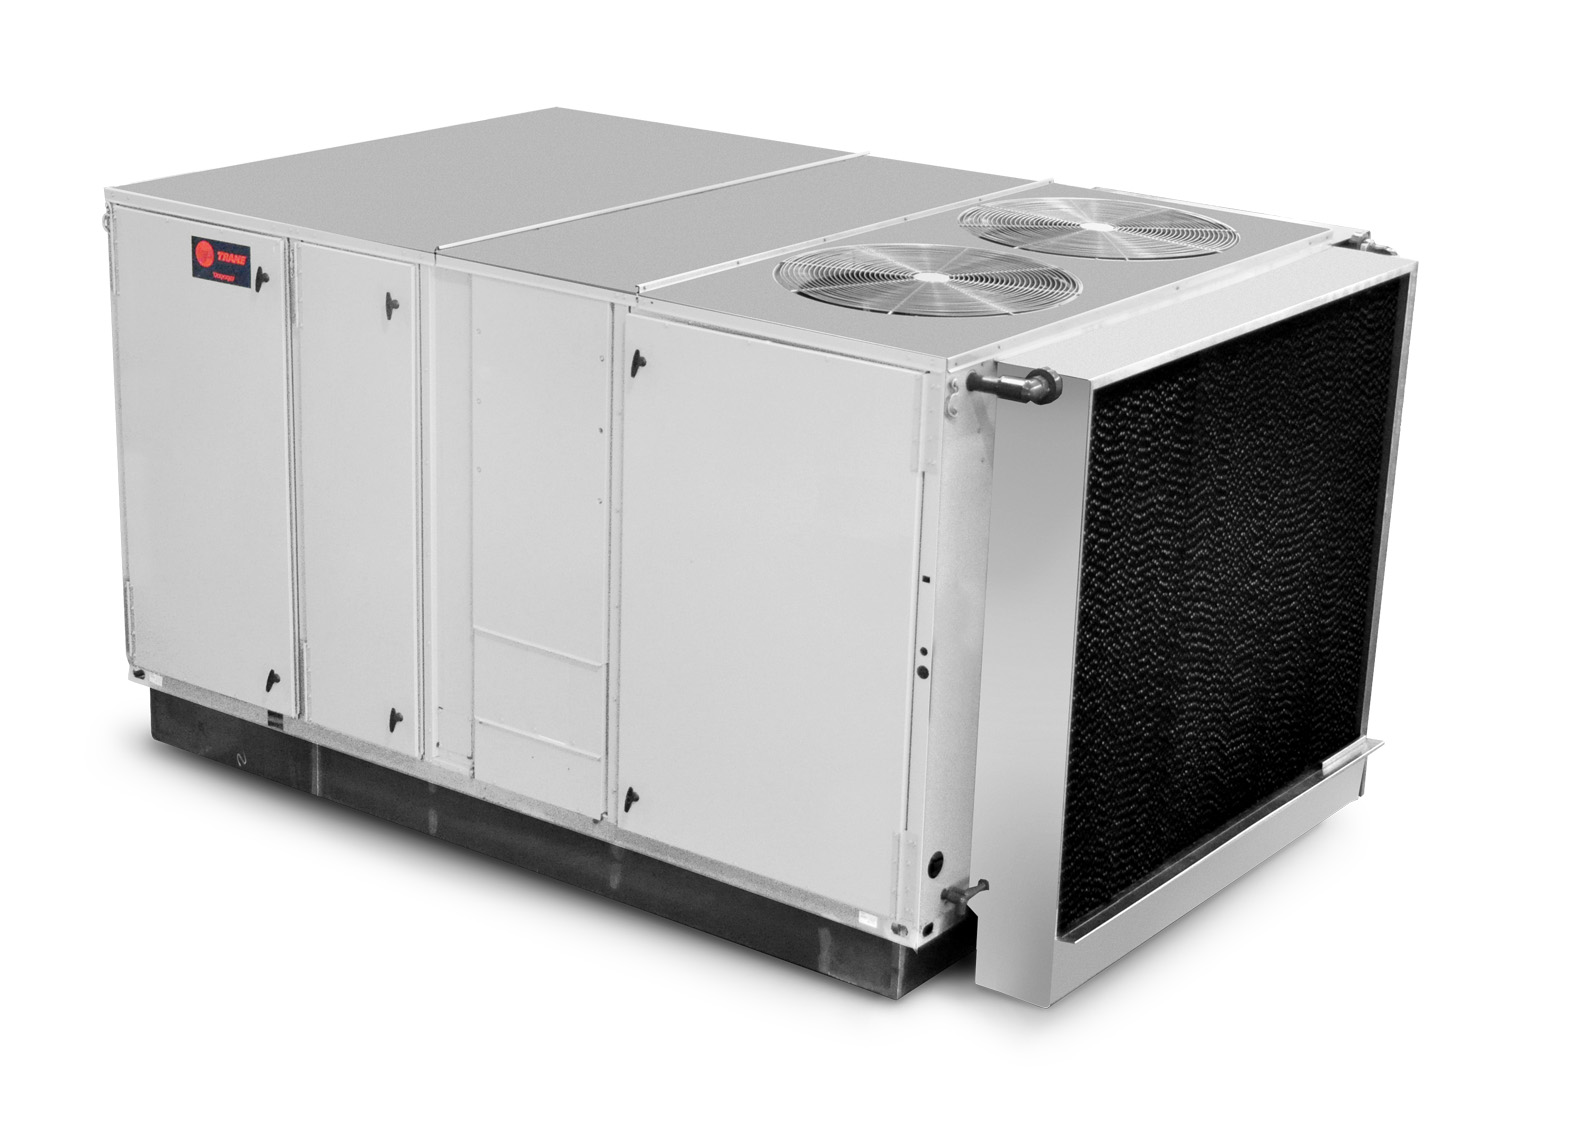 #C51306 Competing To Create A More Energy Efficient Air Conditioner Recommended 6227 Rooftop Heating And Cooling Units pics with 1574x1122 px on helpvideos.info - Air Conditioners, Air Coolers and more